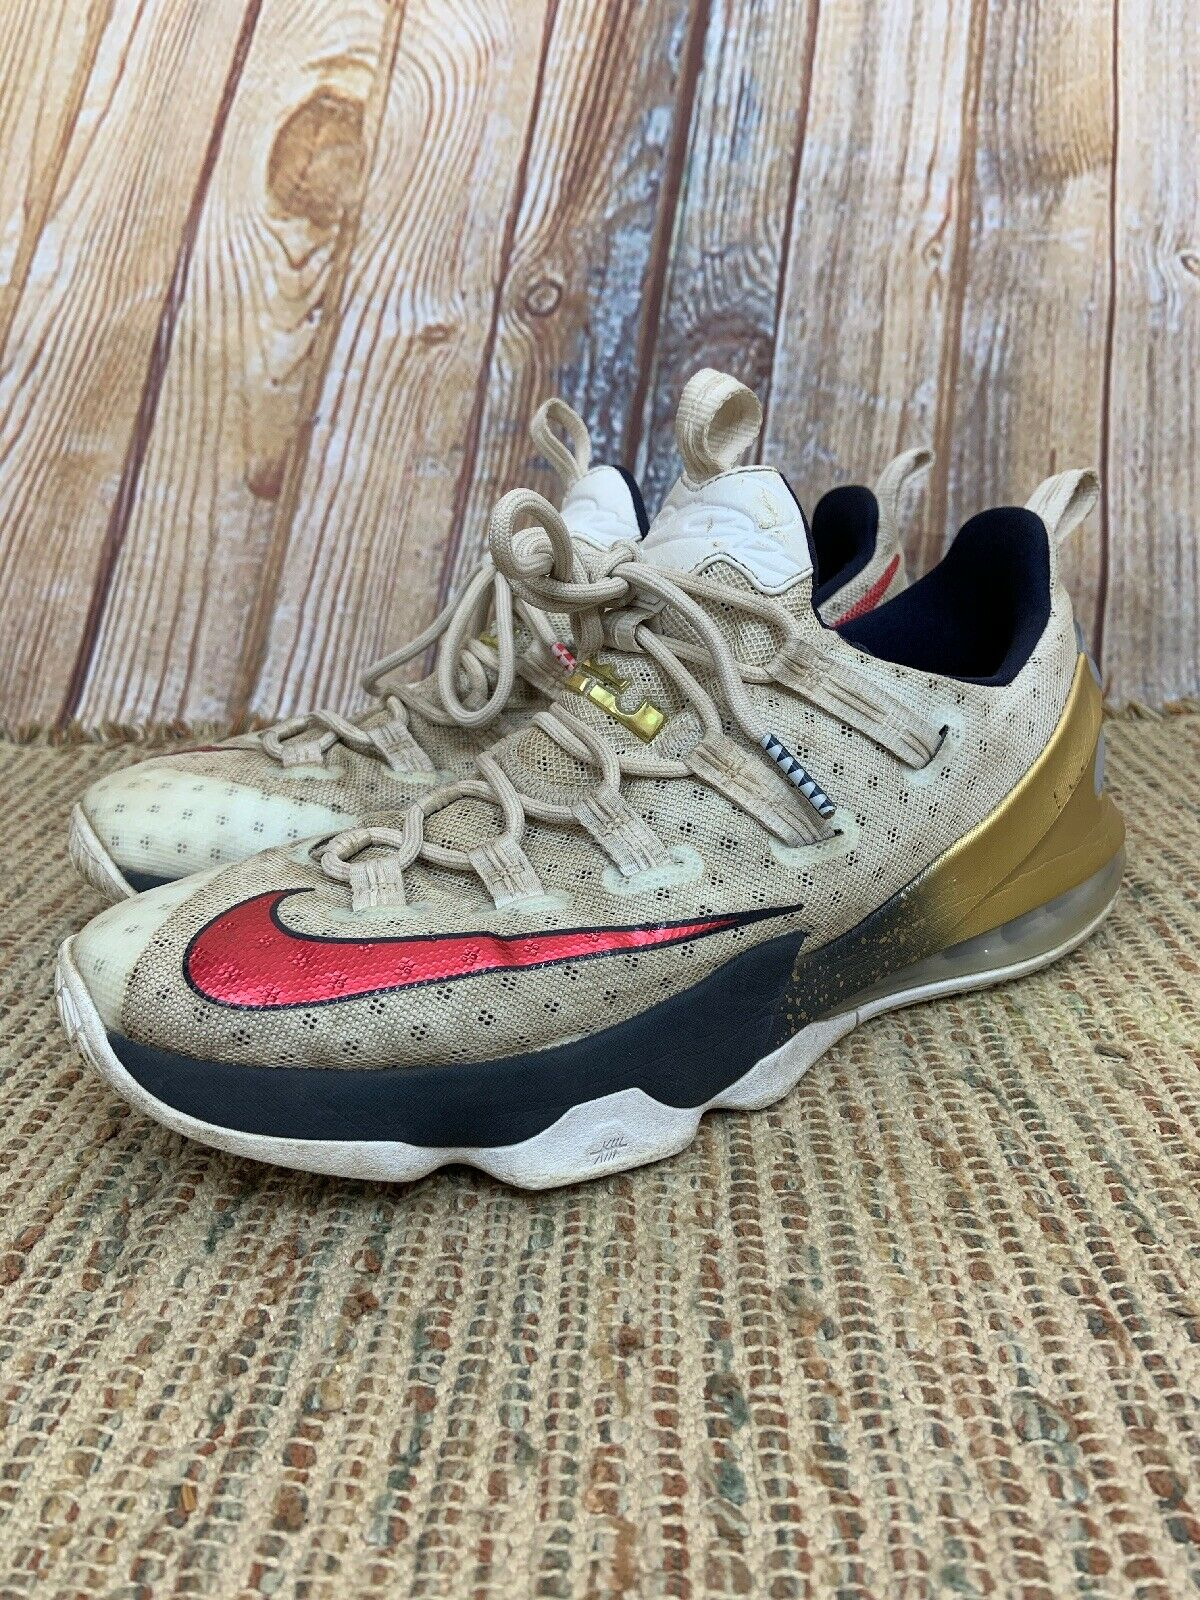 507b1a35bf Nike Lebron XIII 13 Mens Sneakers Red White bluee gold Olympic 831925 164  Size 12 ncvfta9927-Athletic Shoes